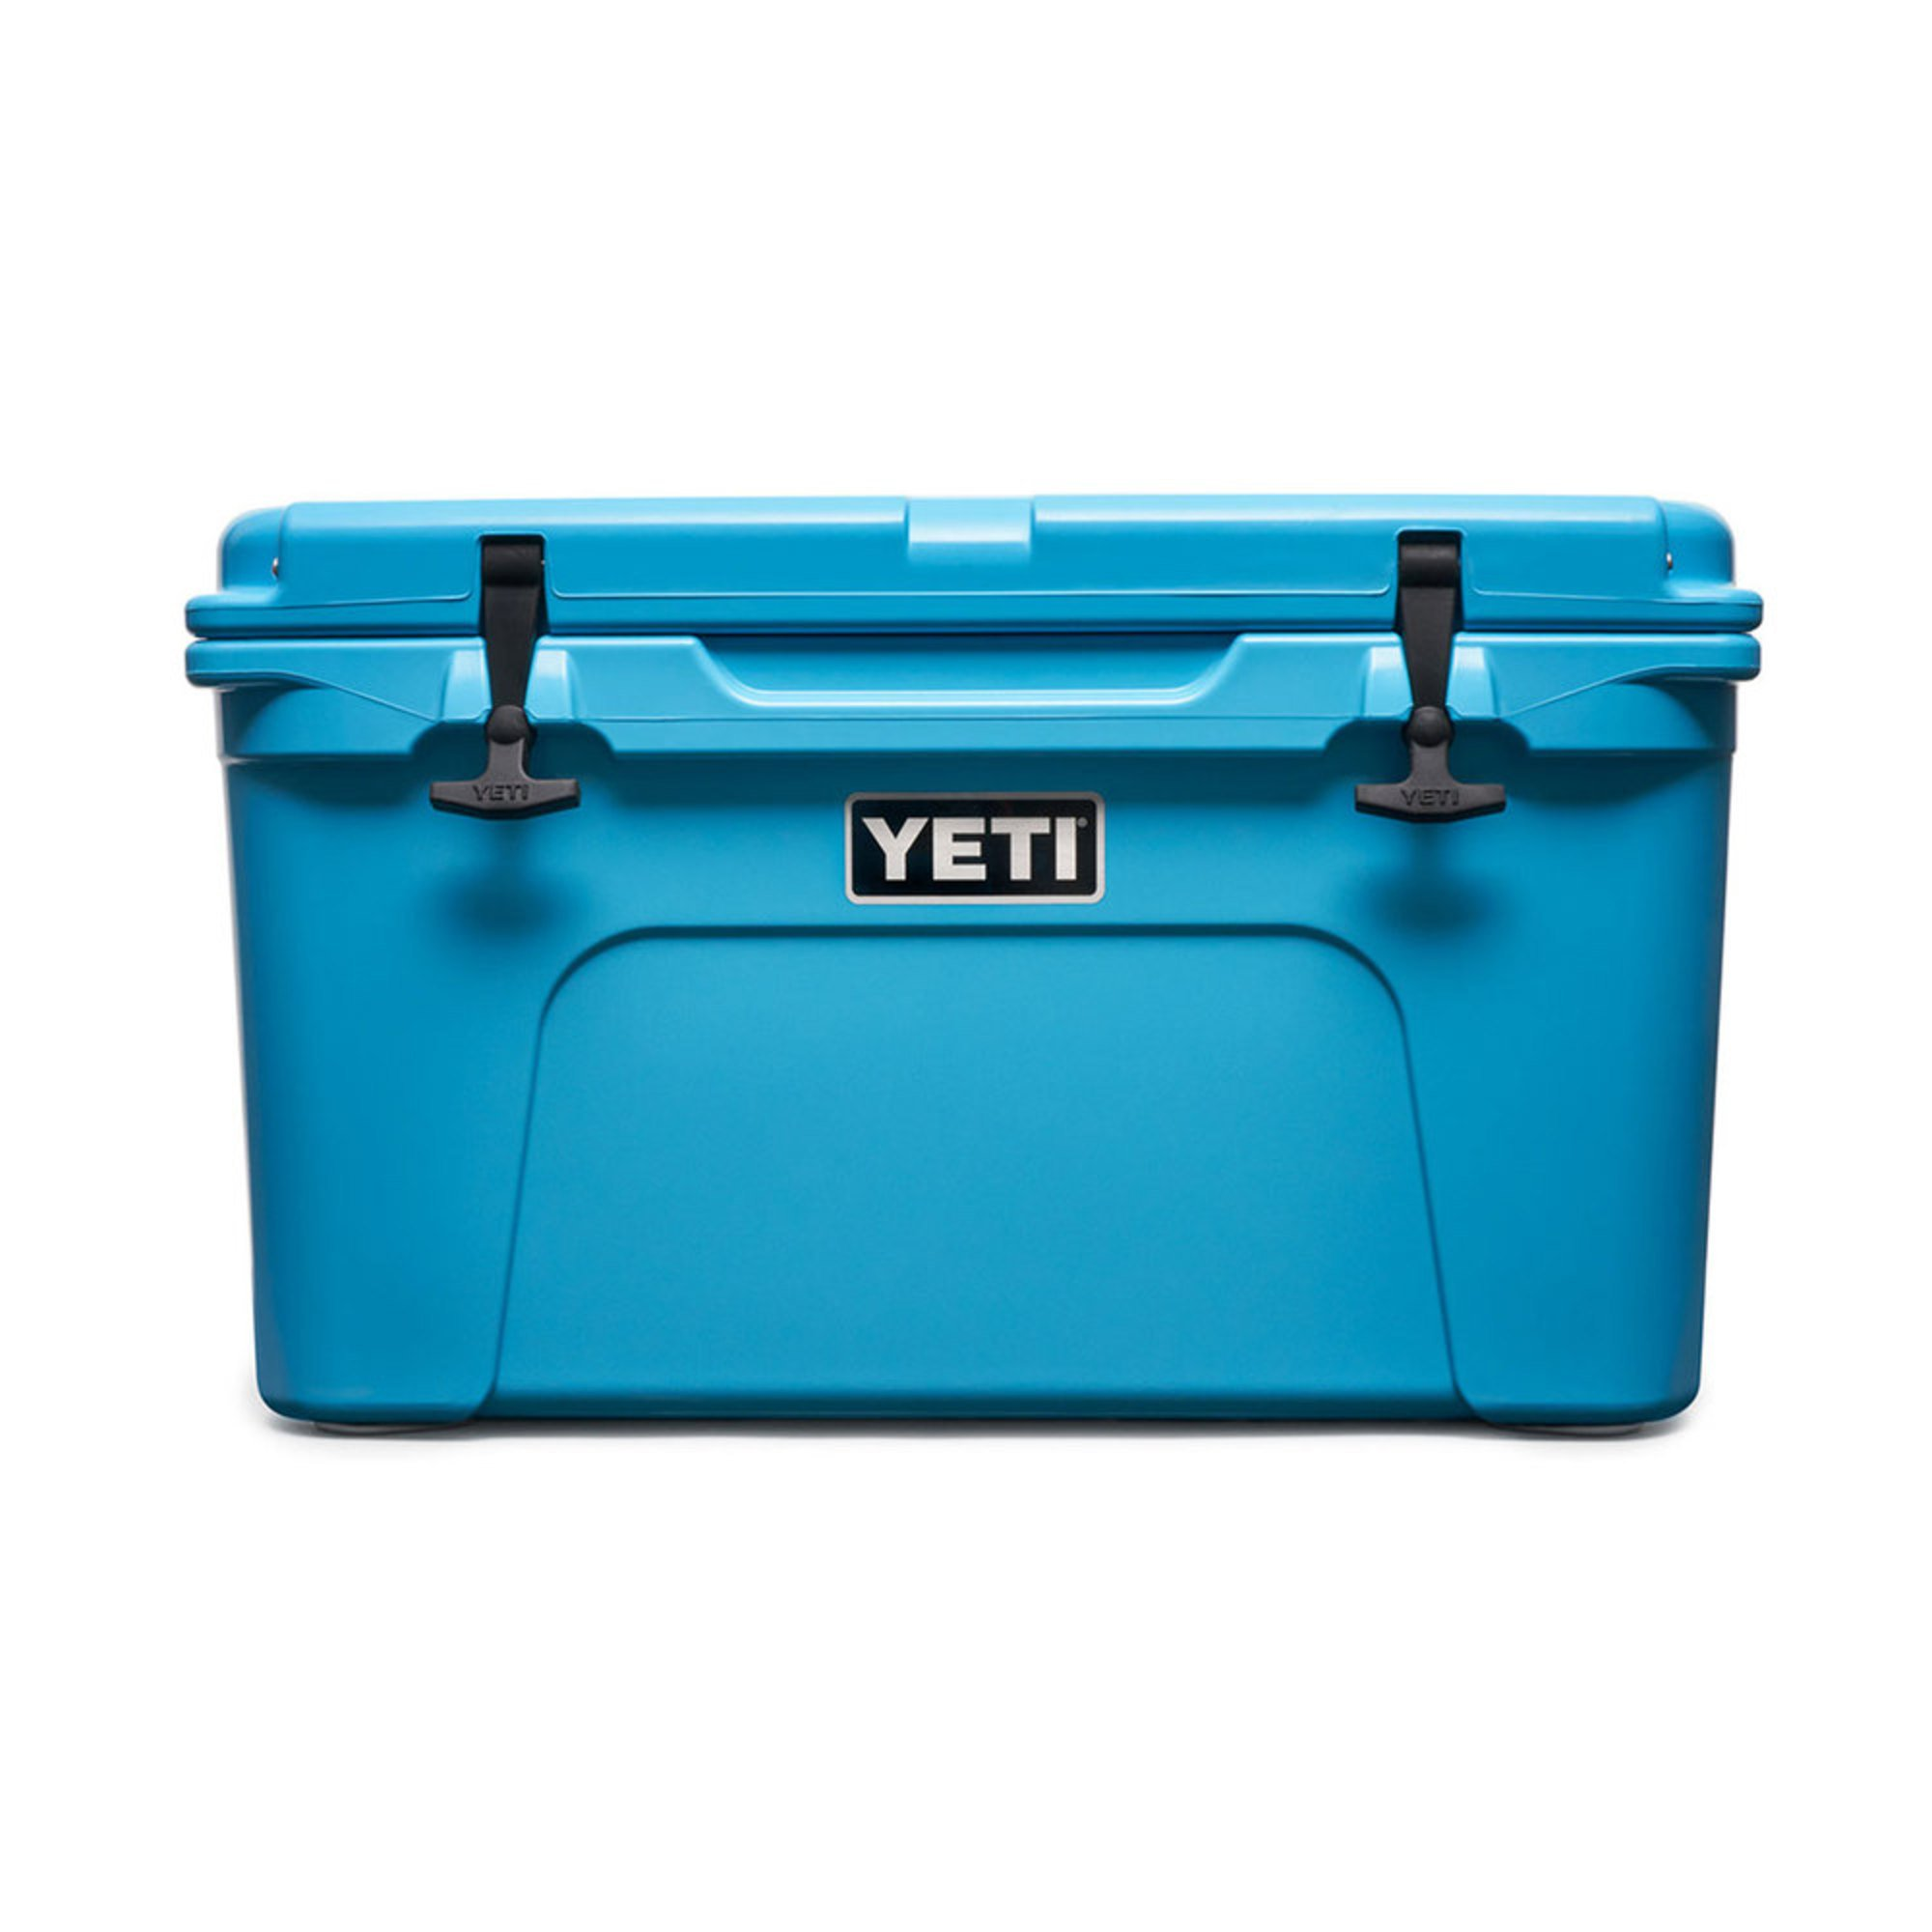 aa877b9ef3f Yeti Tundra 45 - Reef Blue | Hardside Coolers | For The Home - Shop ...